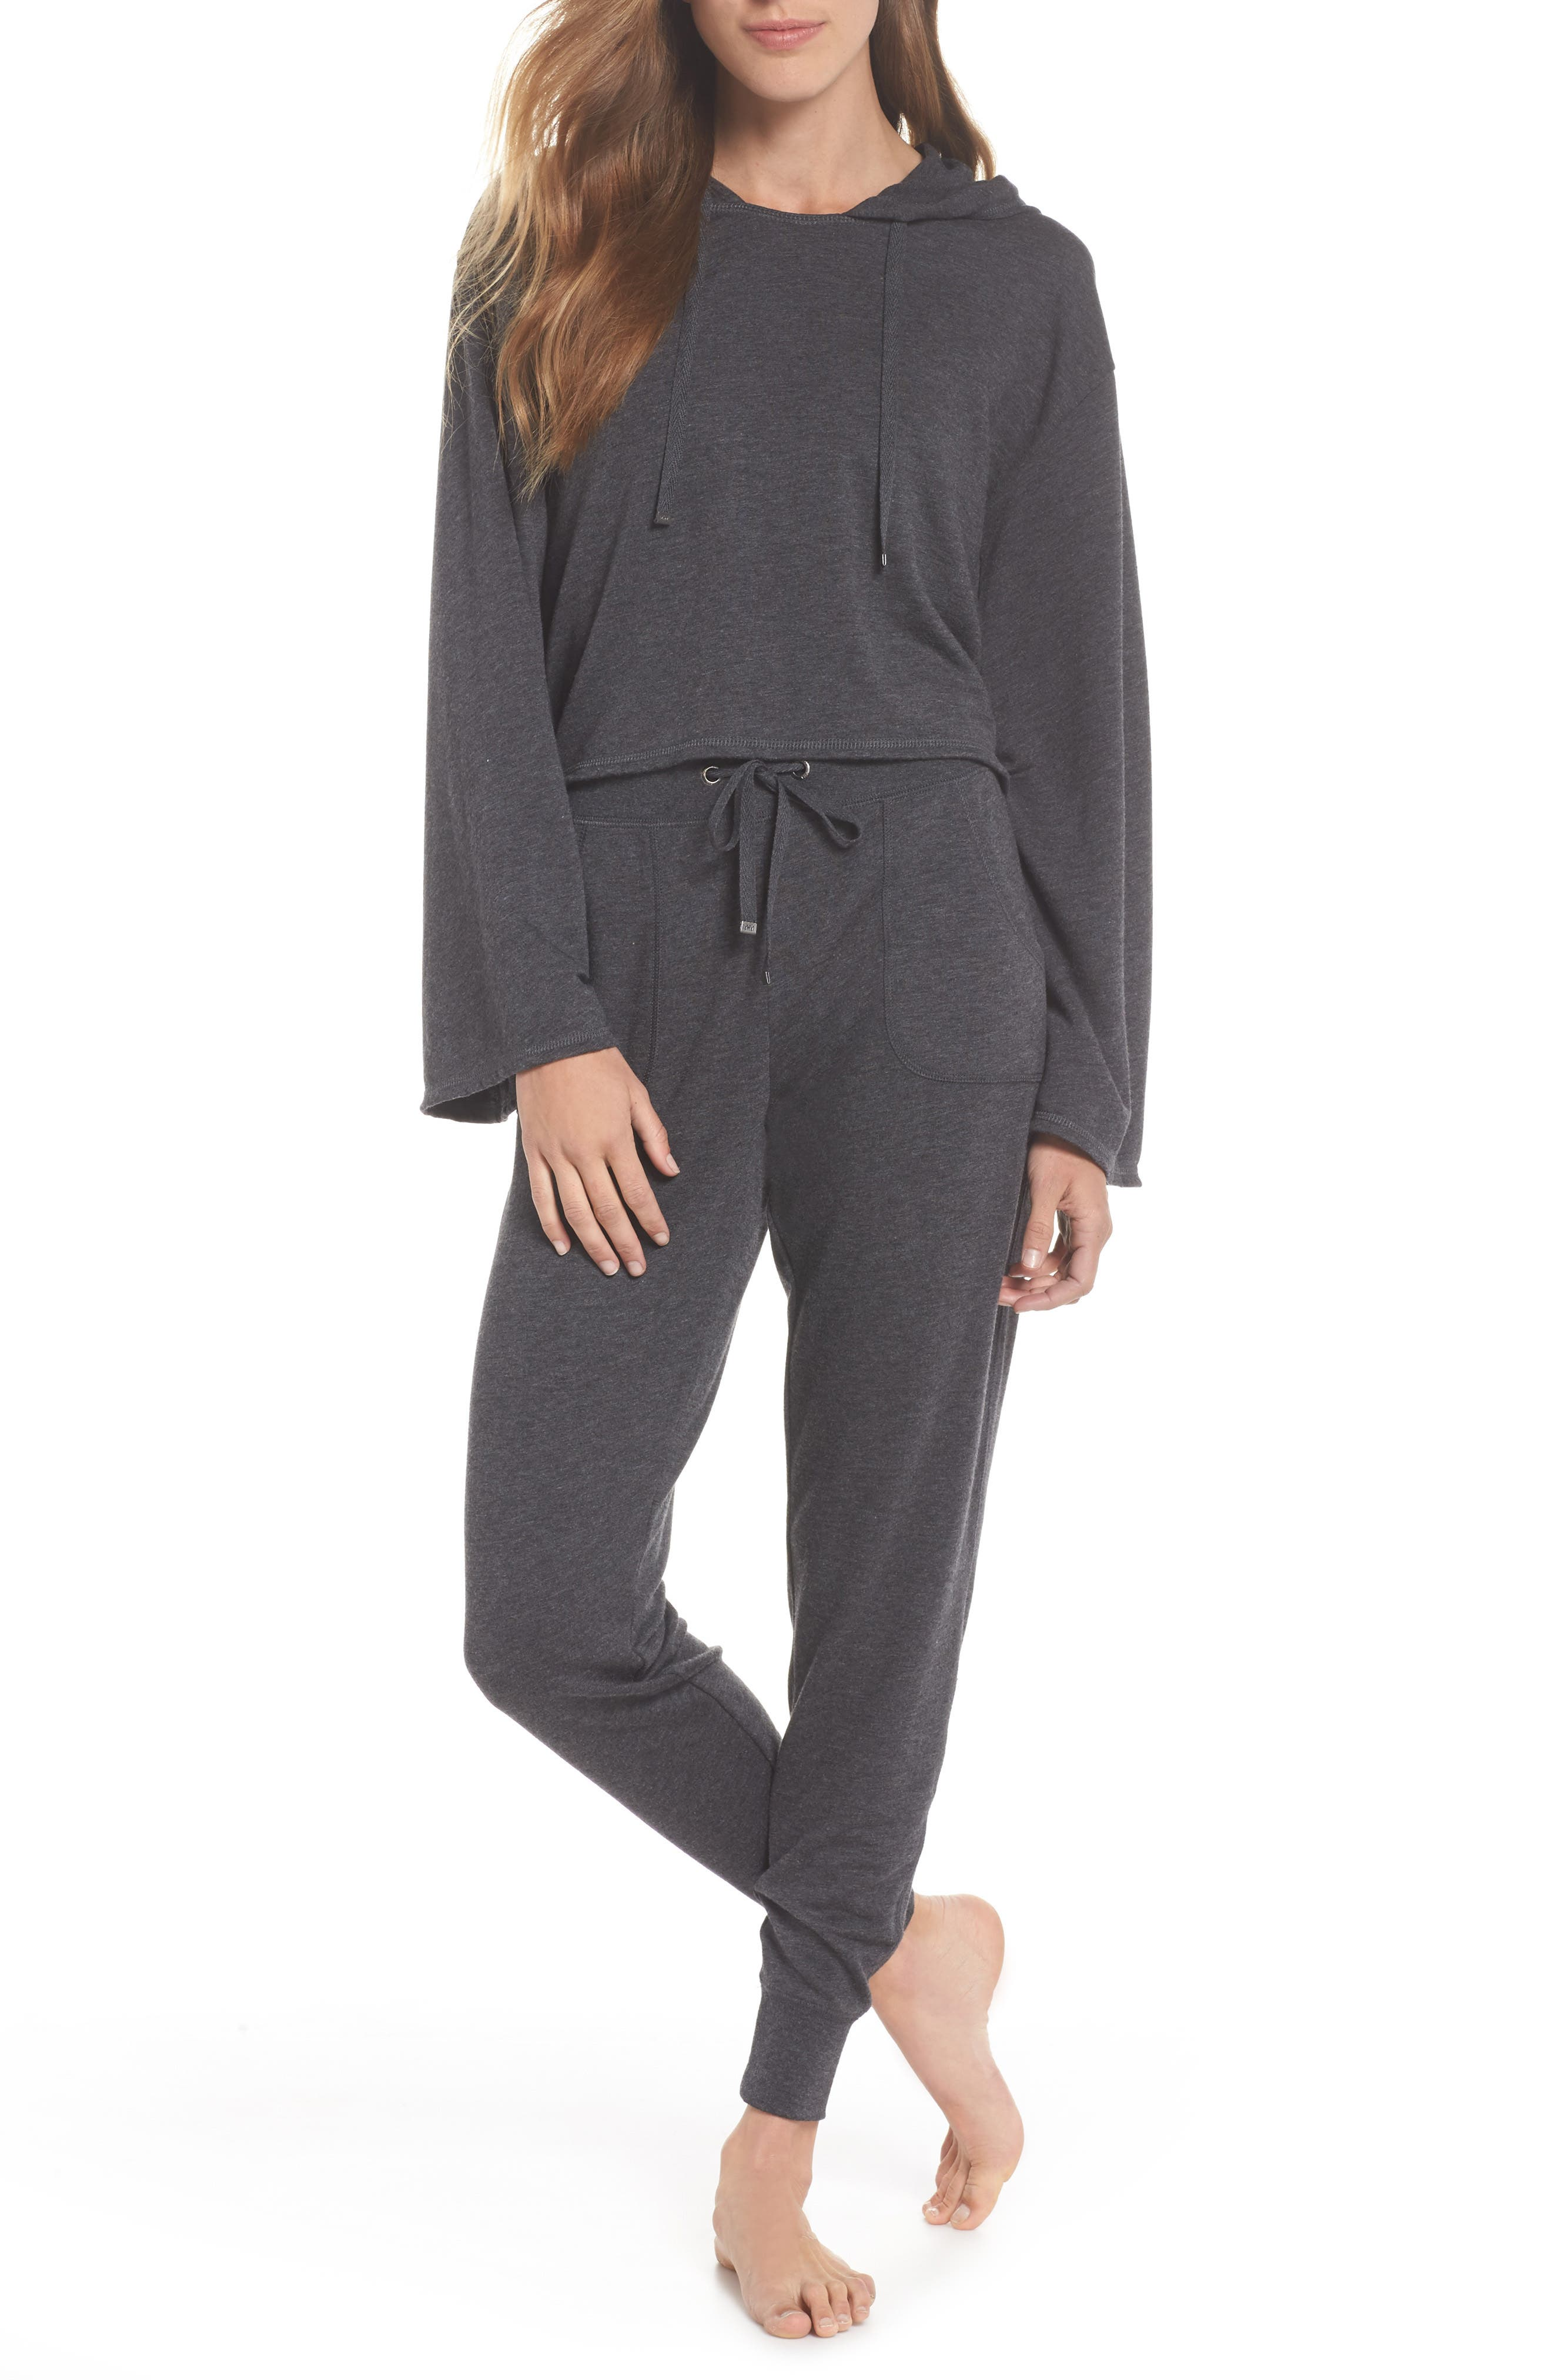 All About It Lounge Pants,                             Alternate thumbnail 2, color,                             Grey Wolf Heather